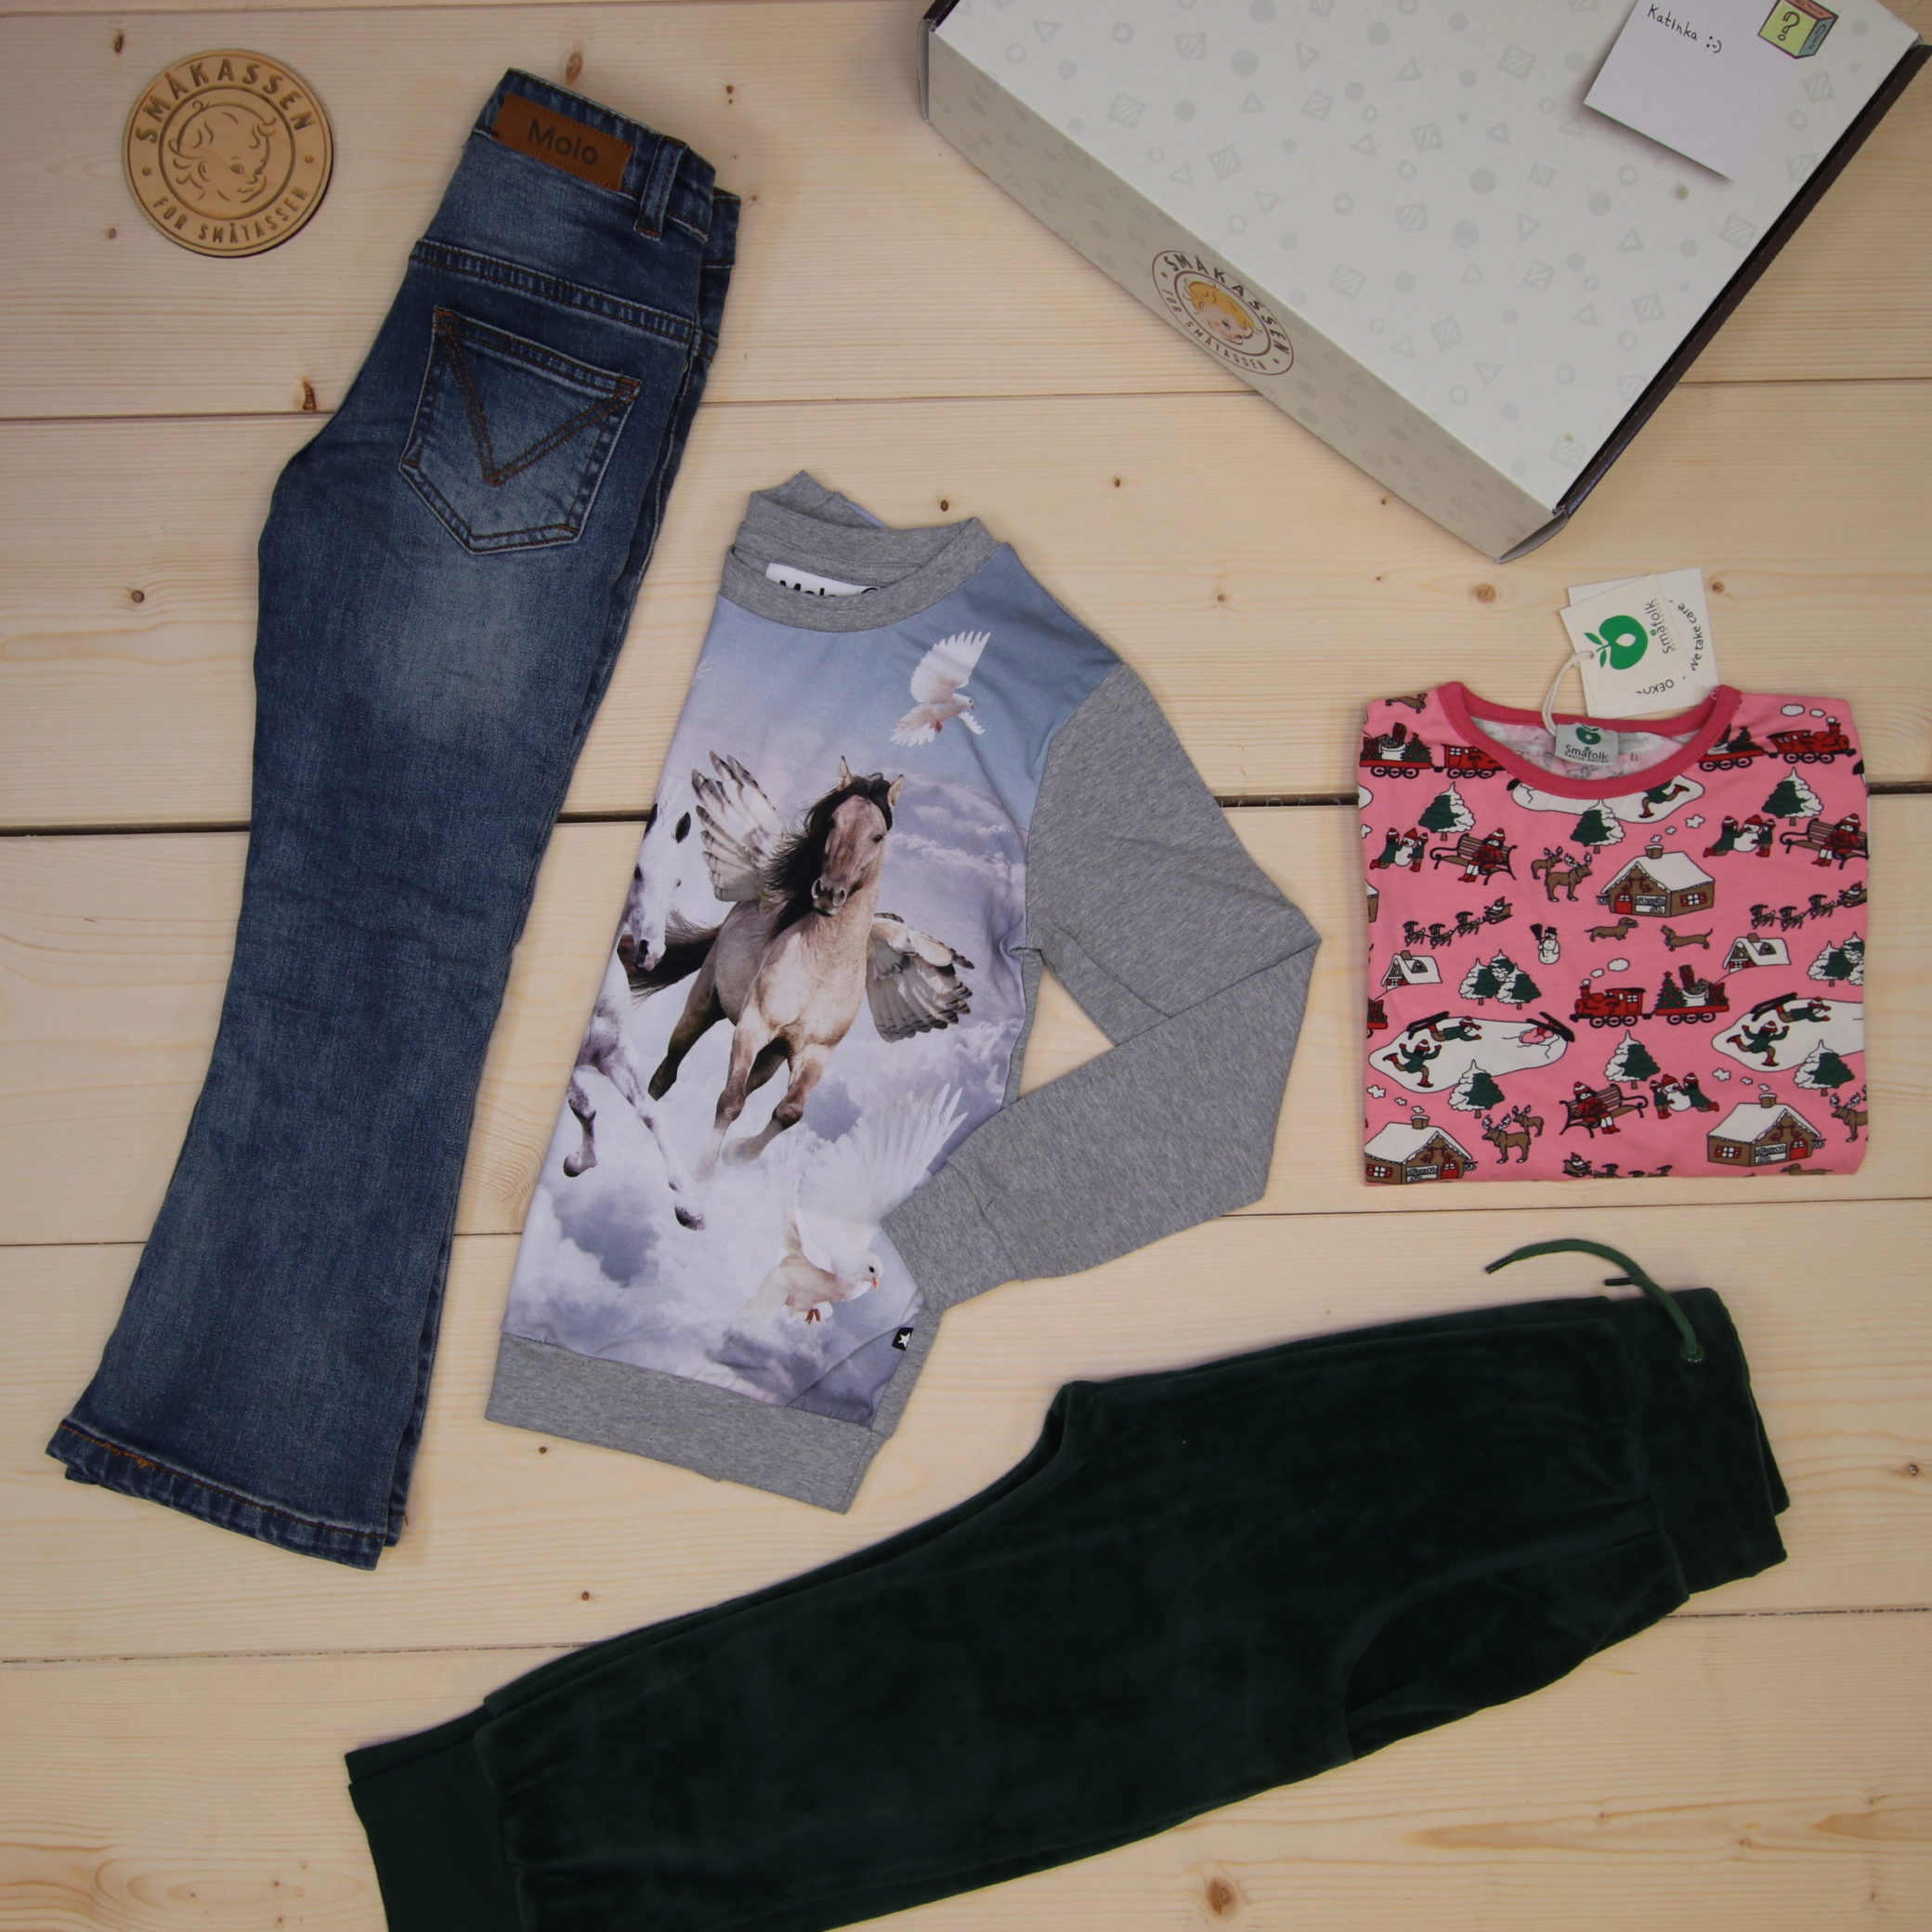 This is a 125 GBP* Småkassen that we prepared for a girl  in the styles cute, cool, and colorful in size 116